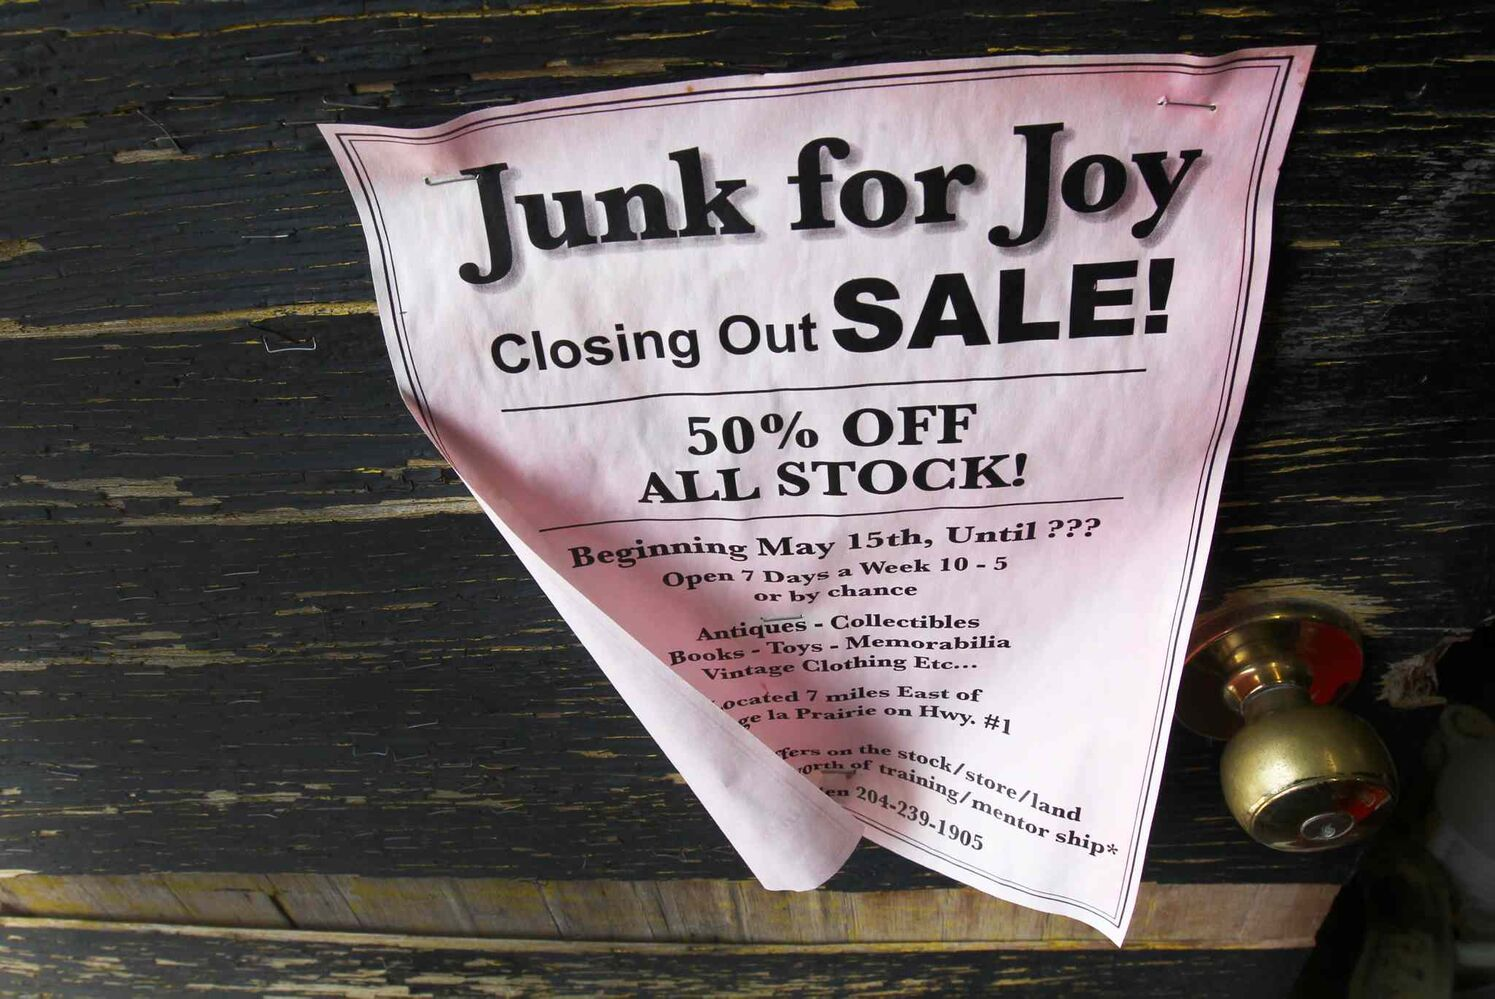 Last sale flyer boasted on front door of store. Vivian Proden owns Junk for Joy just East of  Portage La Prairie, Manitoba on Hyw. #1 - Vivian, 84, is retiring after 34 years in the junk business and is having a 50% off sale starting this Friday.  ((JOE BRYKSA / WINNIPEG FREE PRESS))